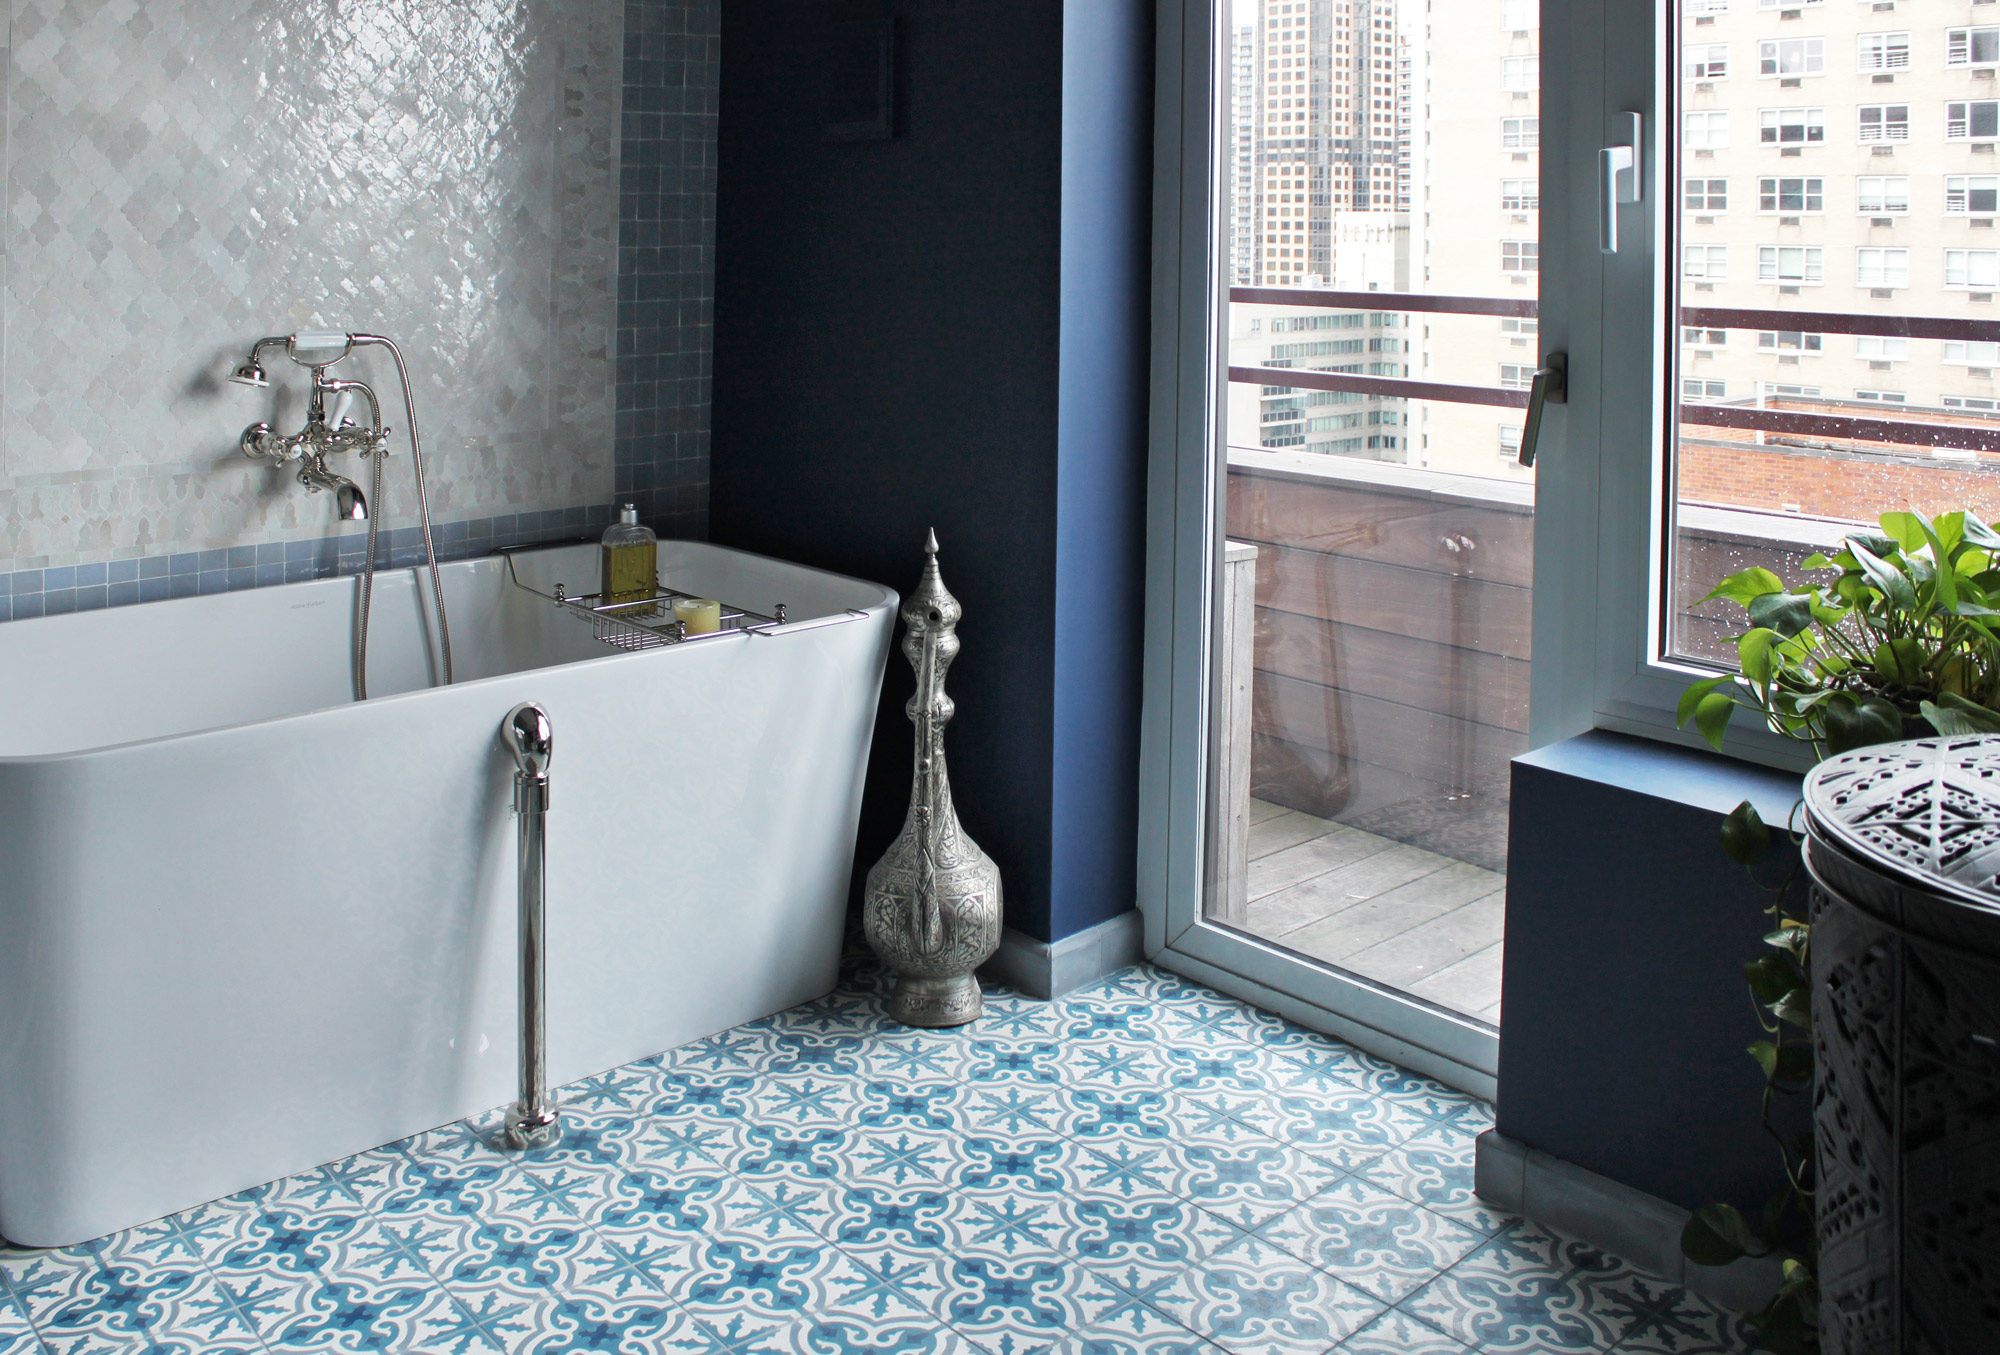 Zementfliesen Bad 10 Gorgeous Ways To Do Patterned Tile In The Bathroom